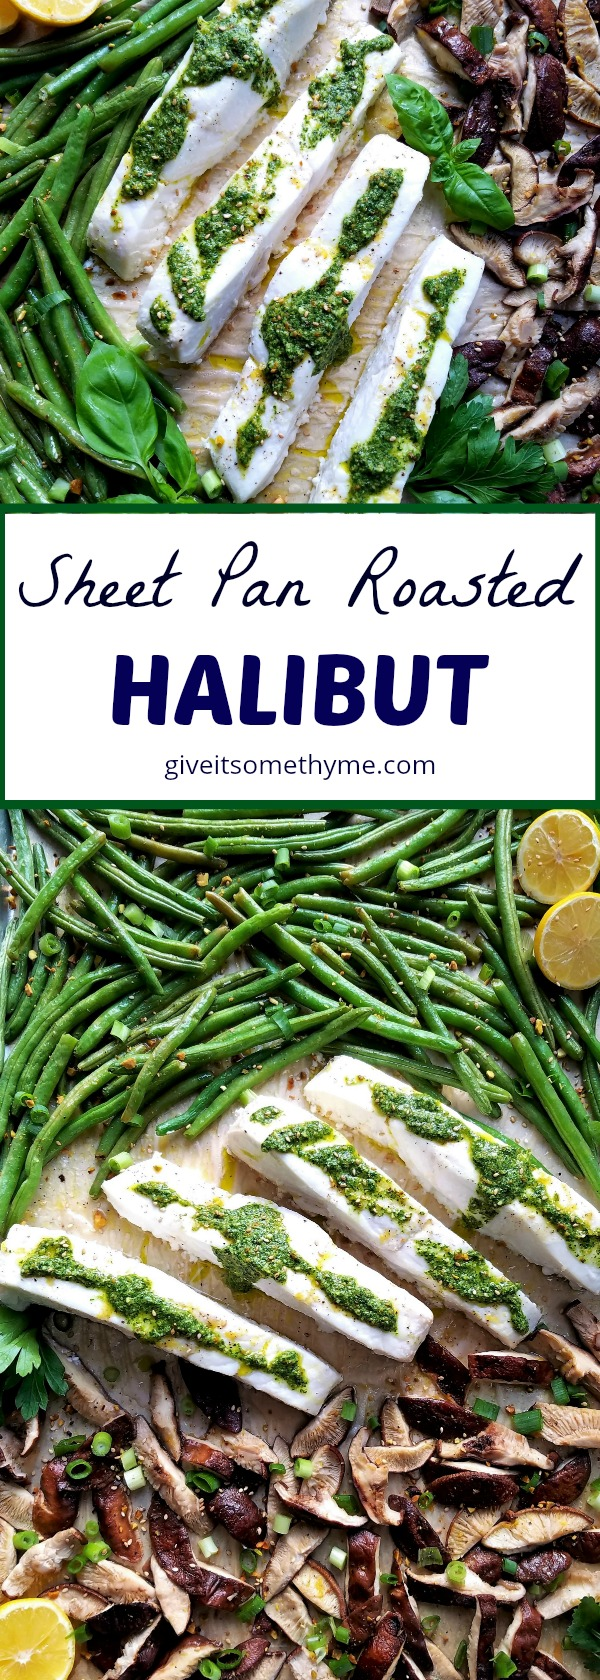 Sheet Pan Roasted Halibut - Give it Some Thyme